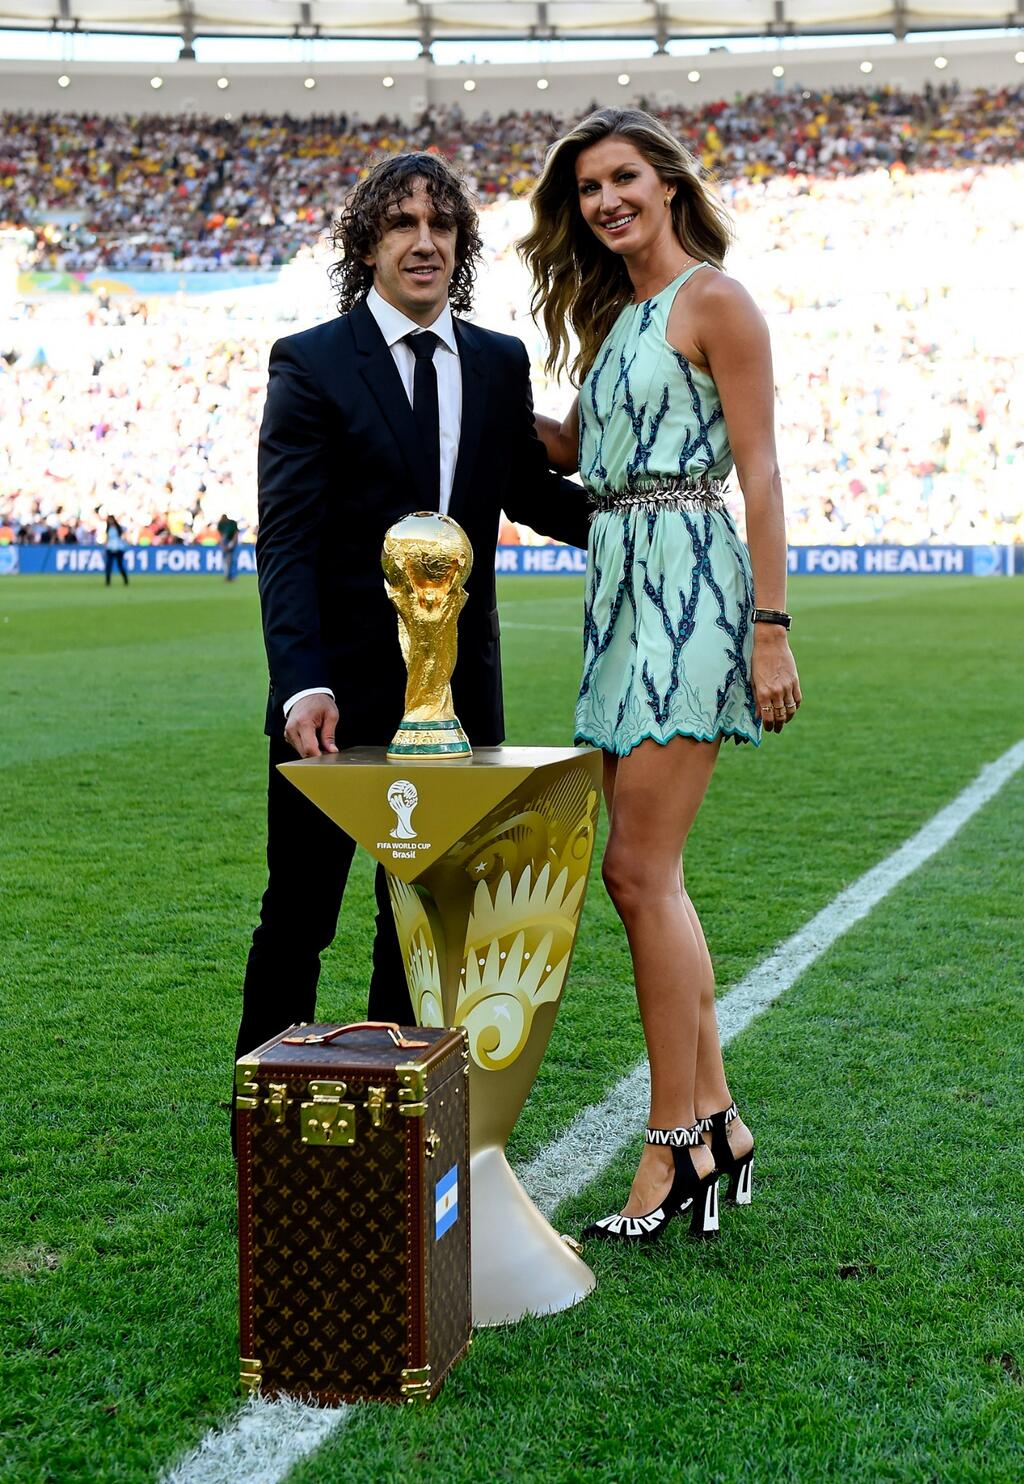 .@GiseleOfficial awaits to present the FIFA #WorldCup trophy housed in the specially designed #LouisVuitton case. http://t.co/Dqrxk8WCBD